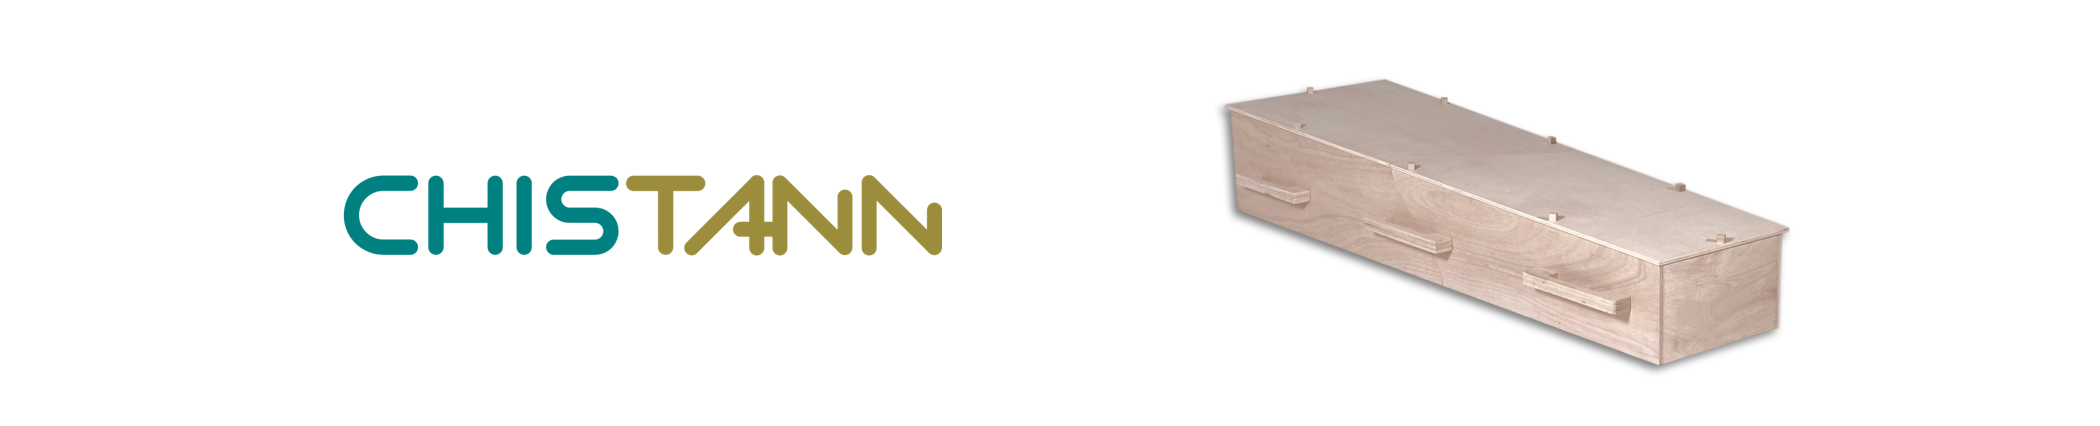 CHISTANN DIY flat-packed coffin in a box